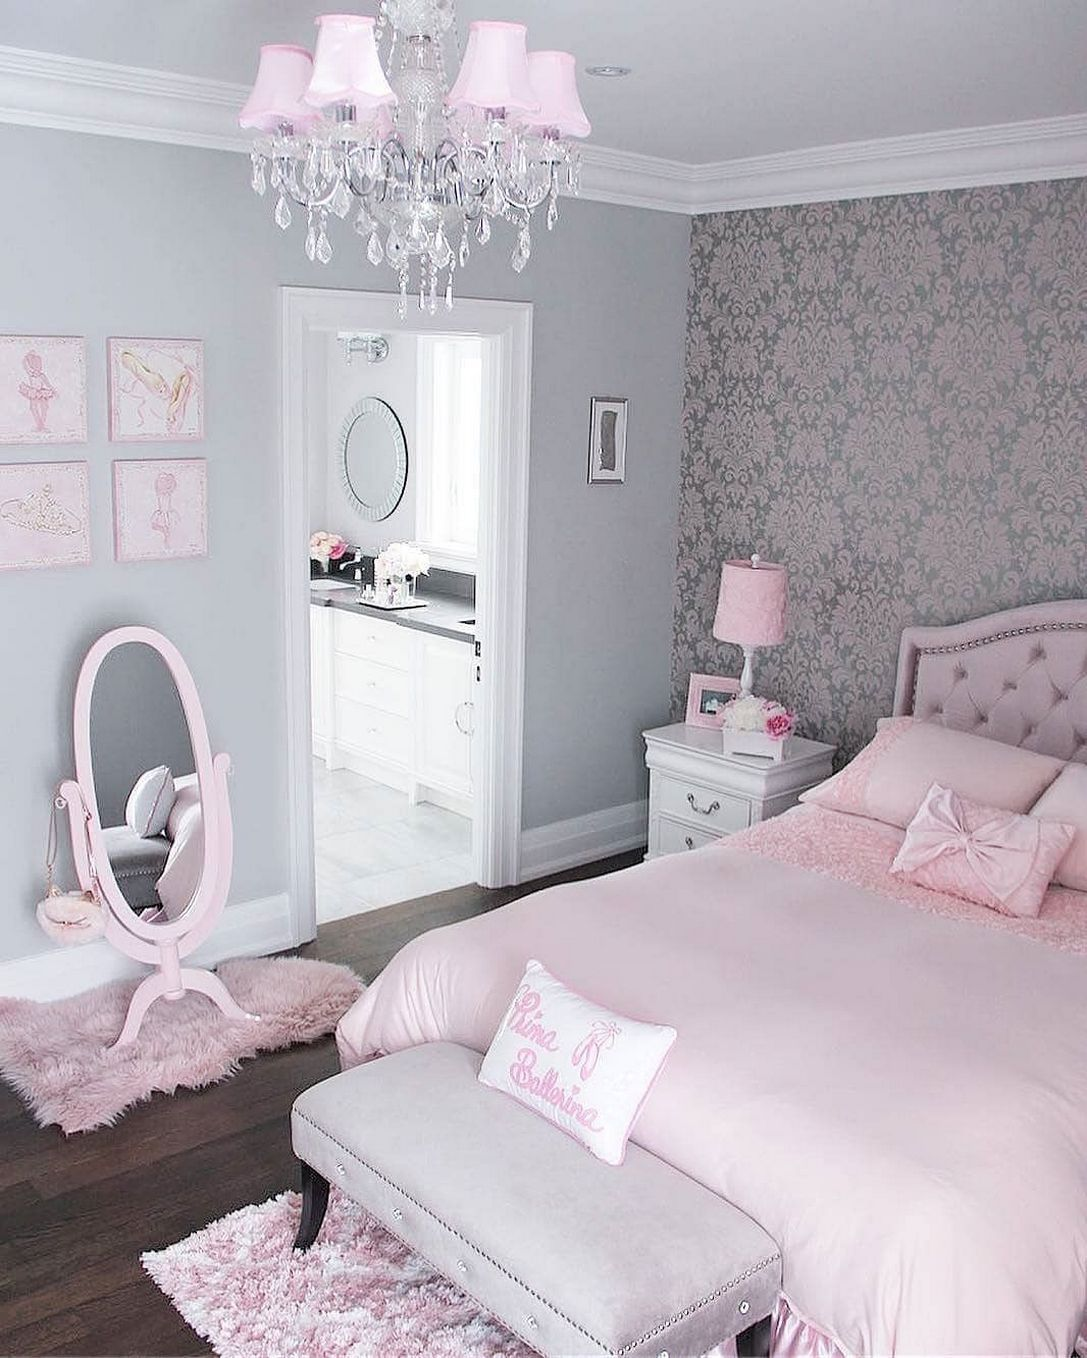 How To Completely Change Your Room Vintage Princess Bed